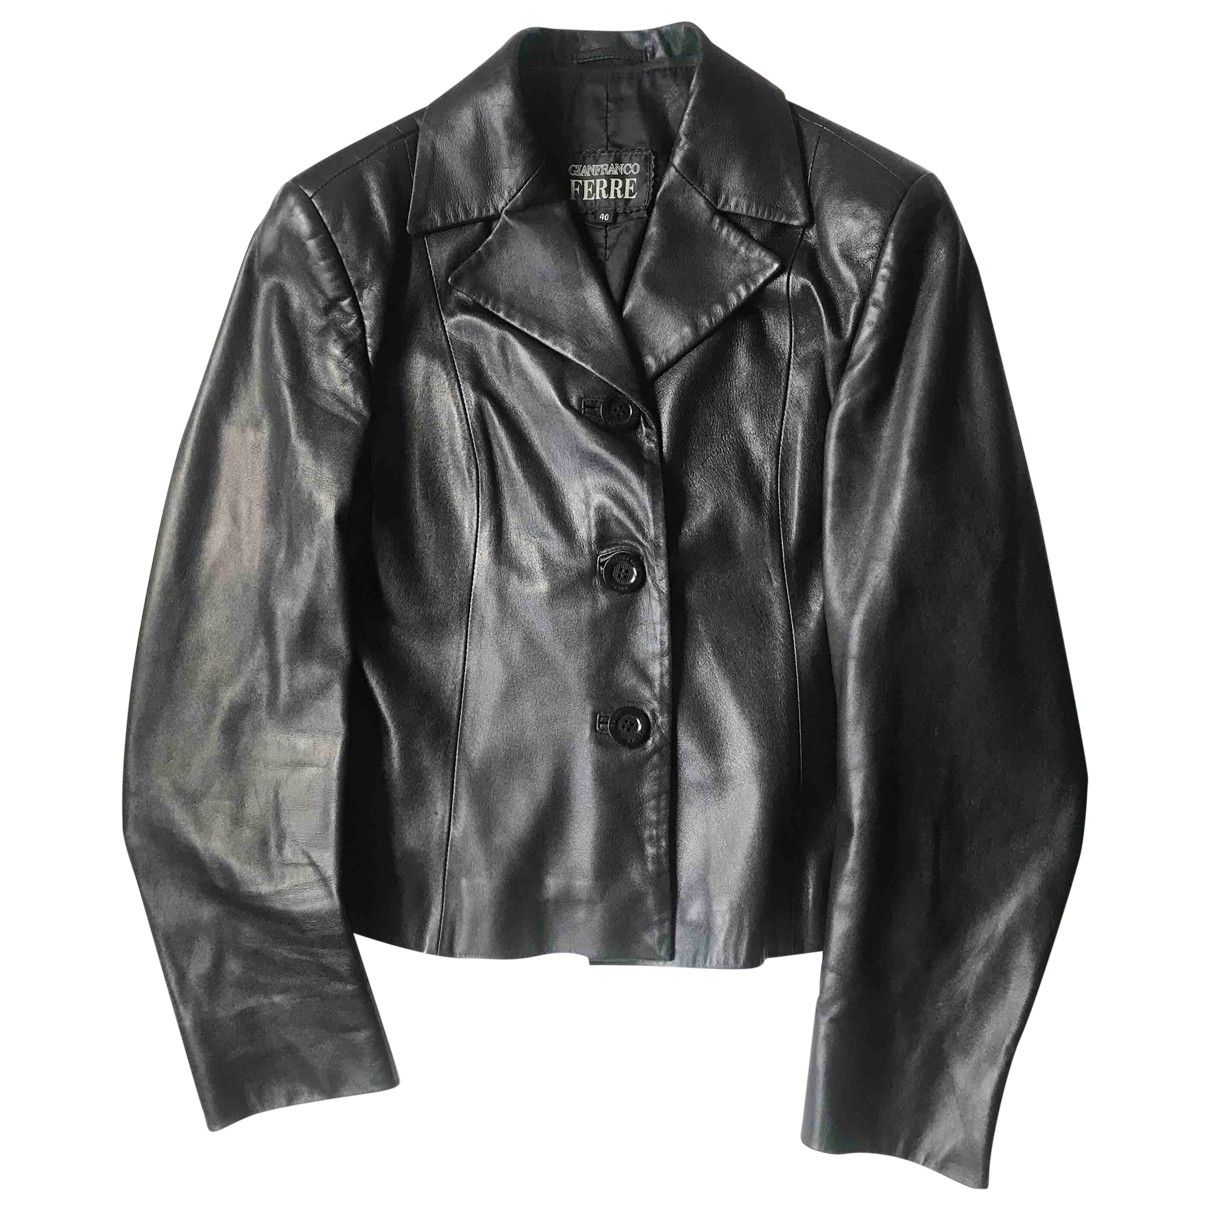 Gianfranco Ferré \N Black Leather jacket for Women 40 IT